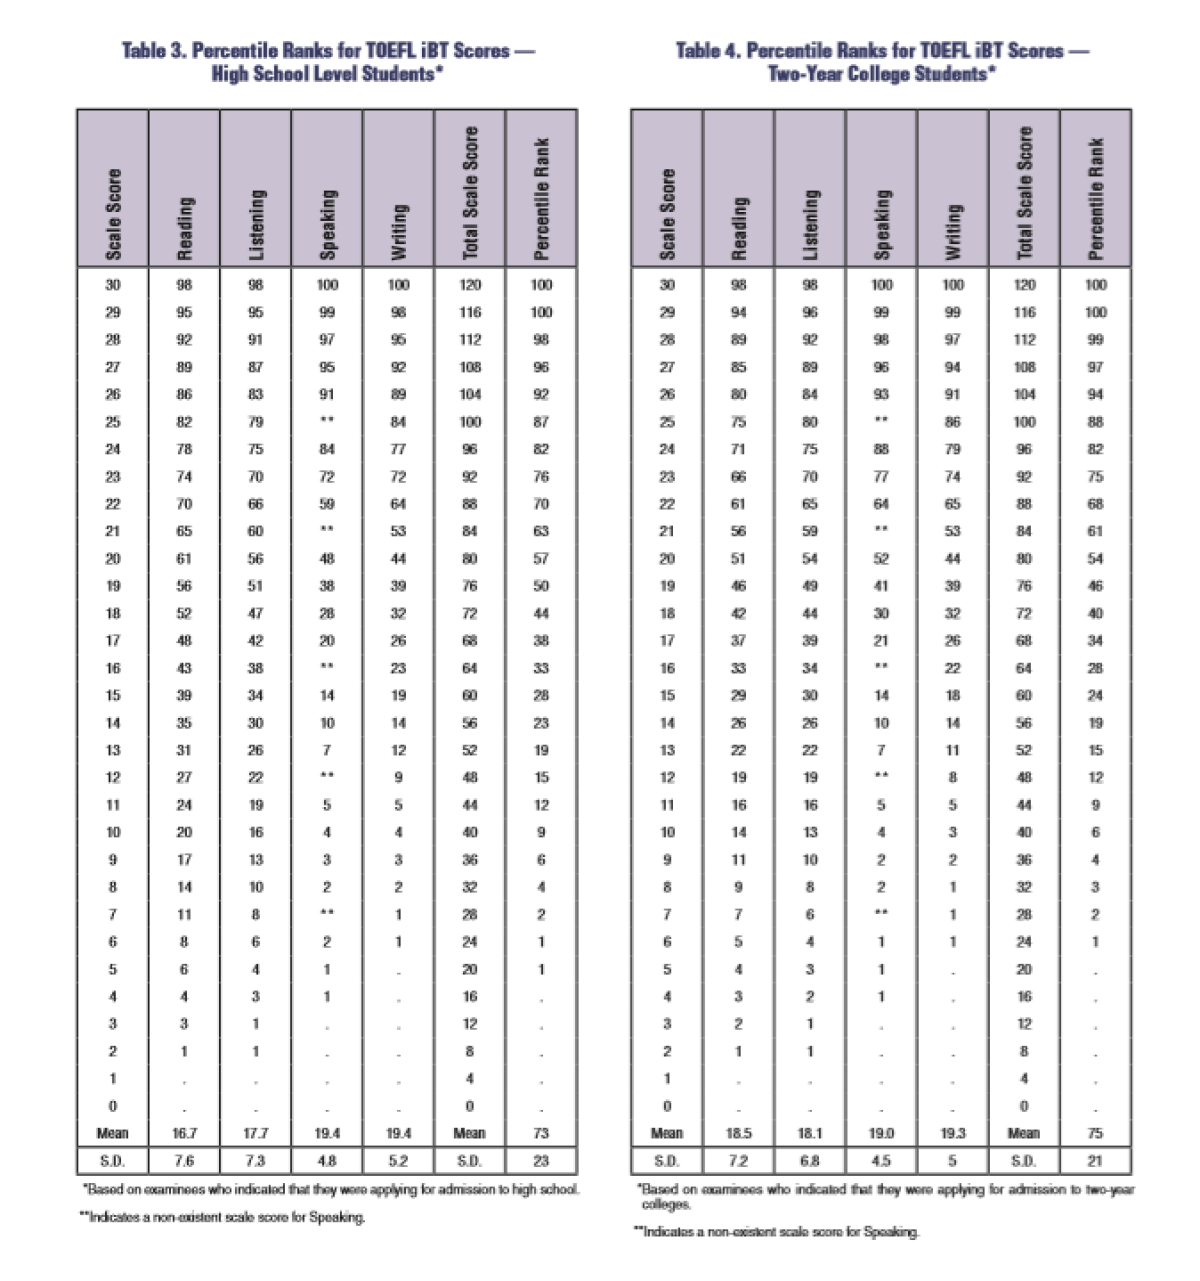 TOEFL score percentages